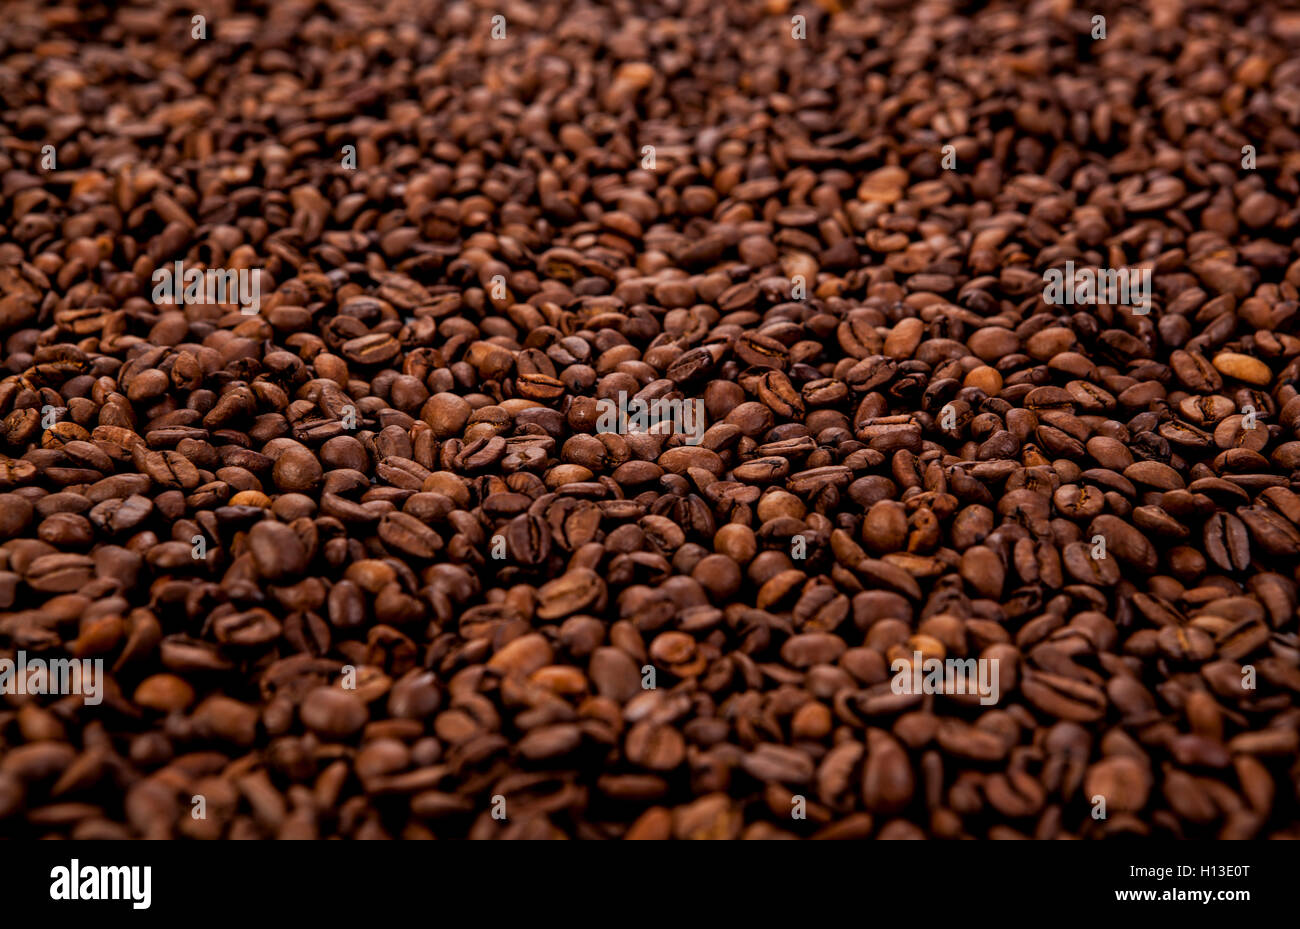 a lot of roasted coffee beans - Stock Image